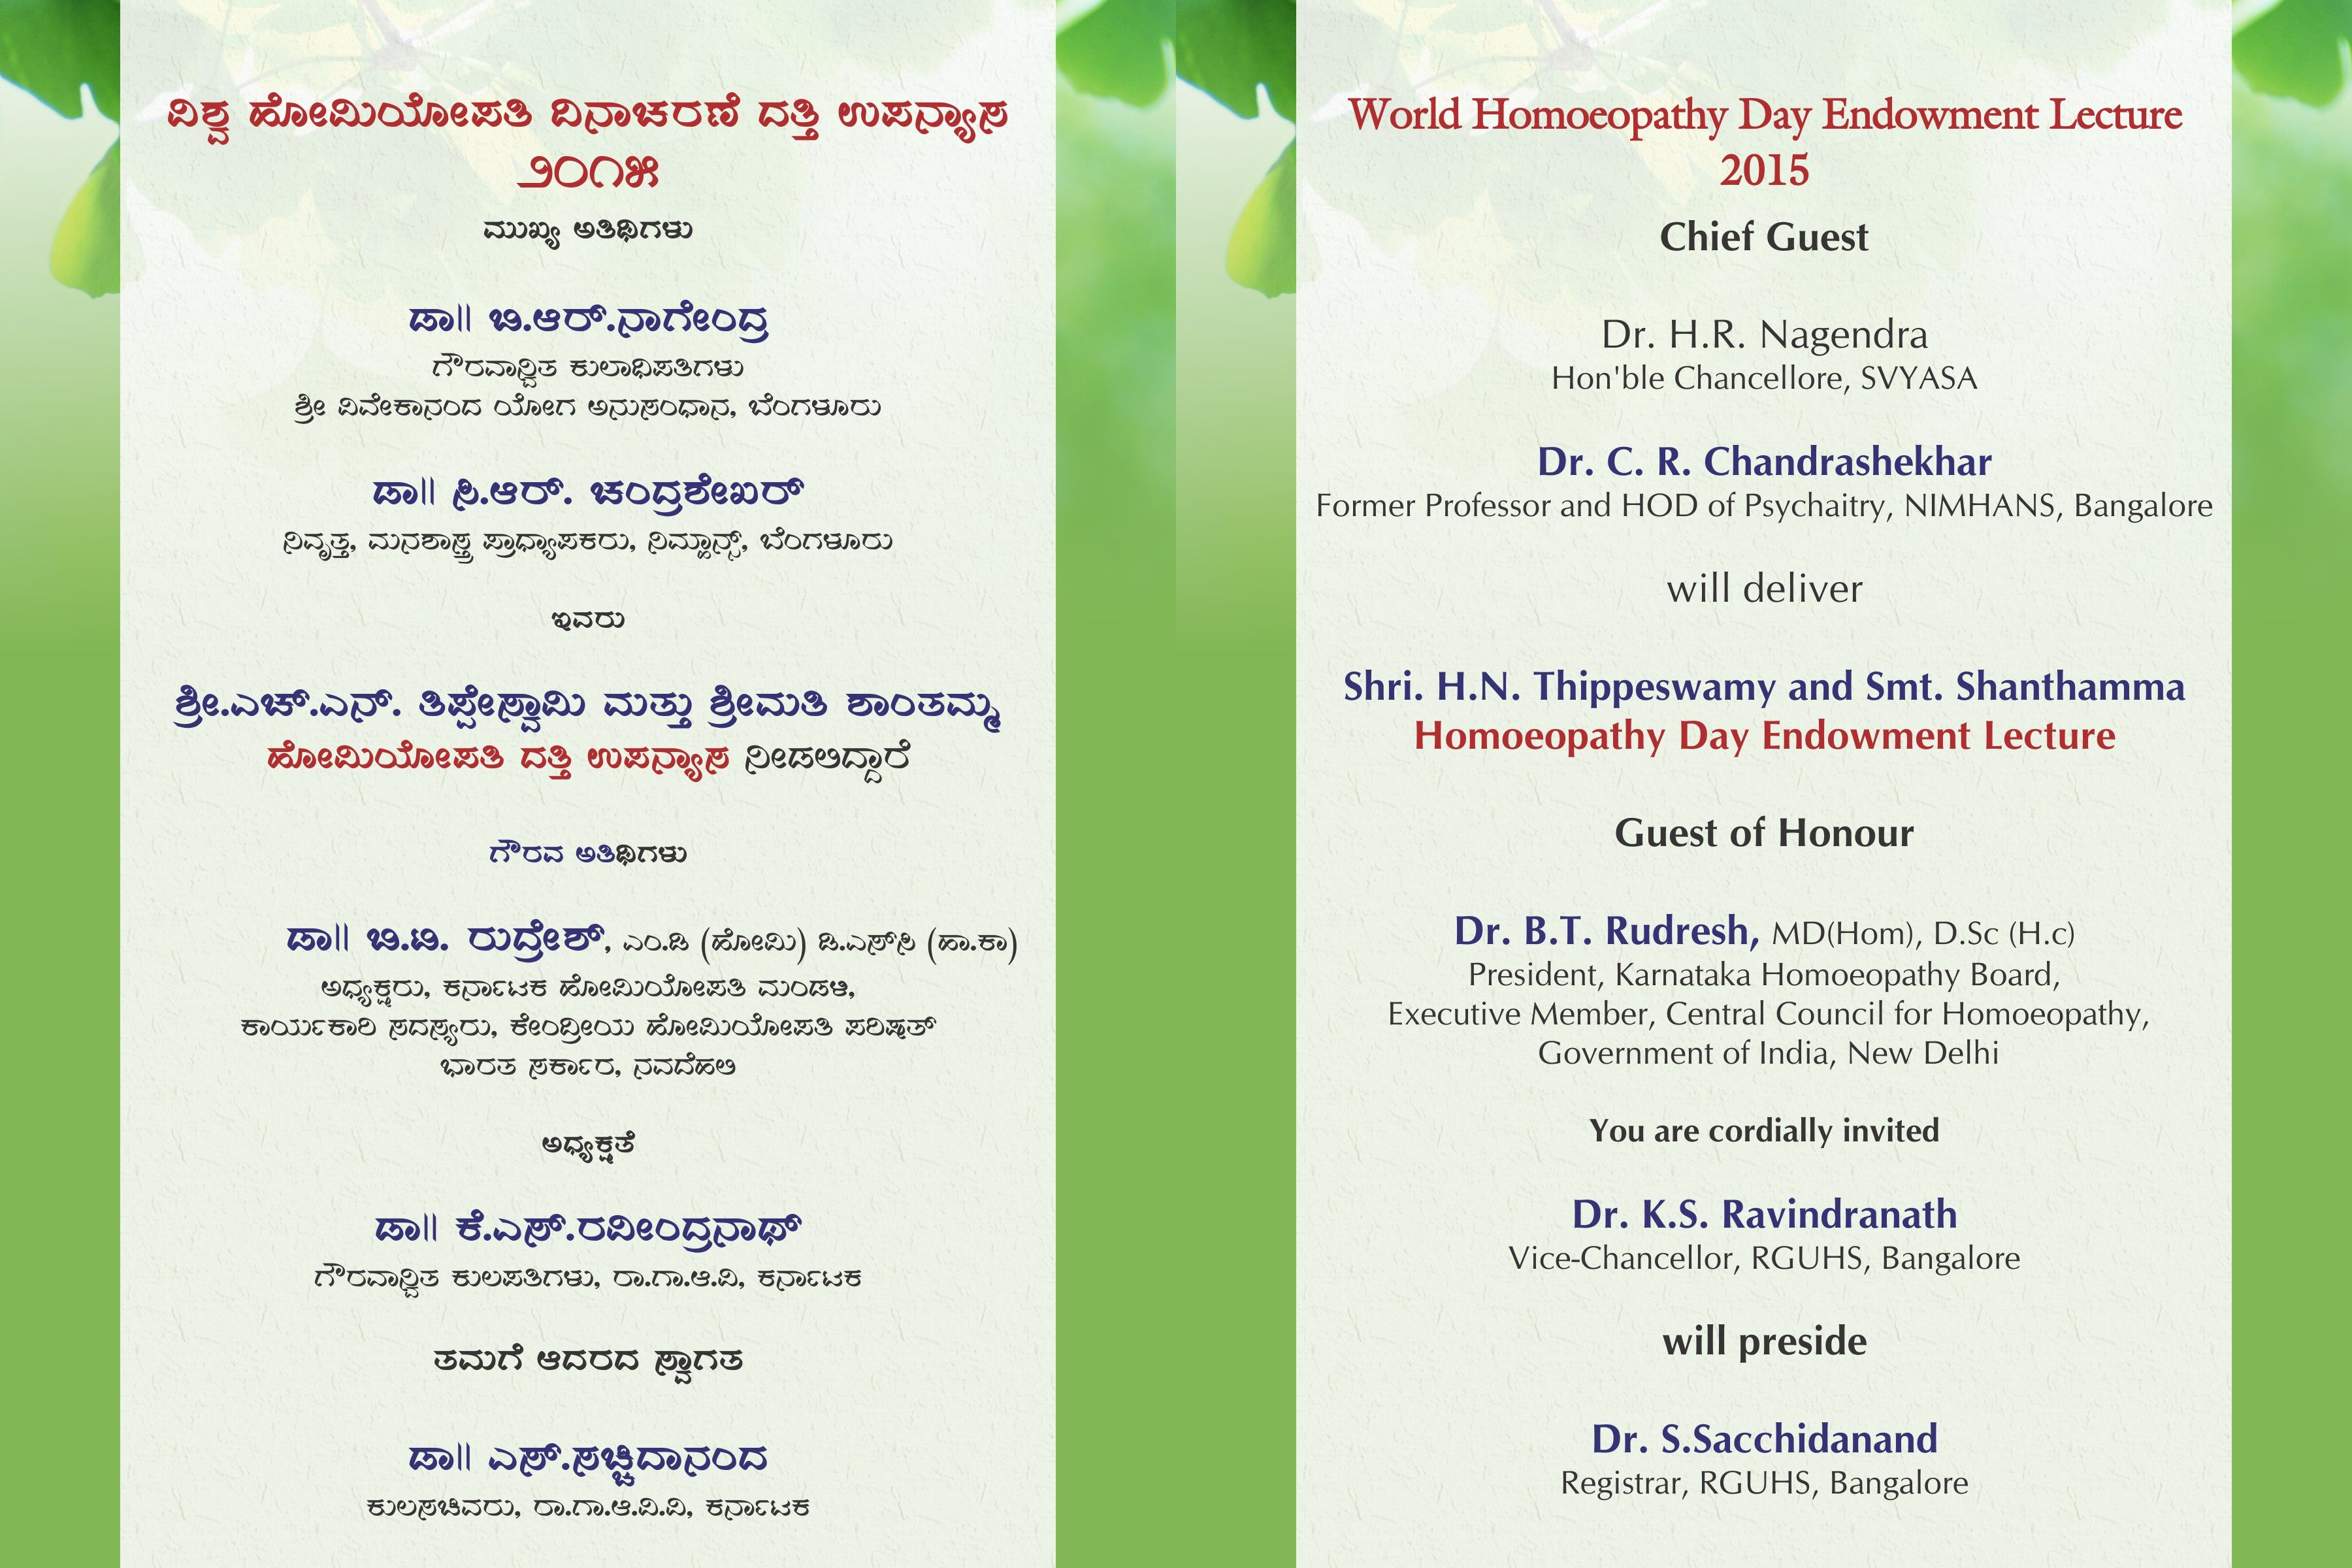 Invitation for world Homeopathy Day